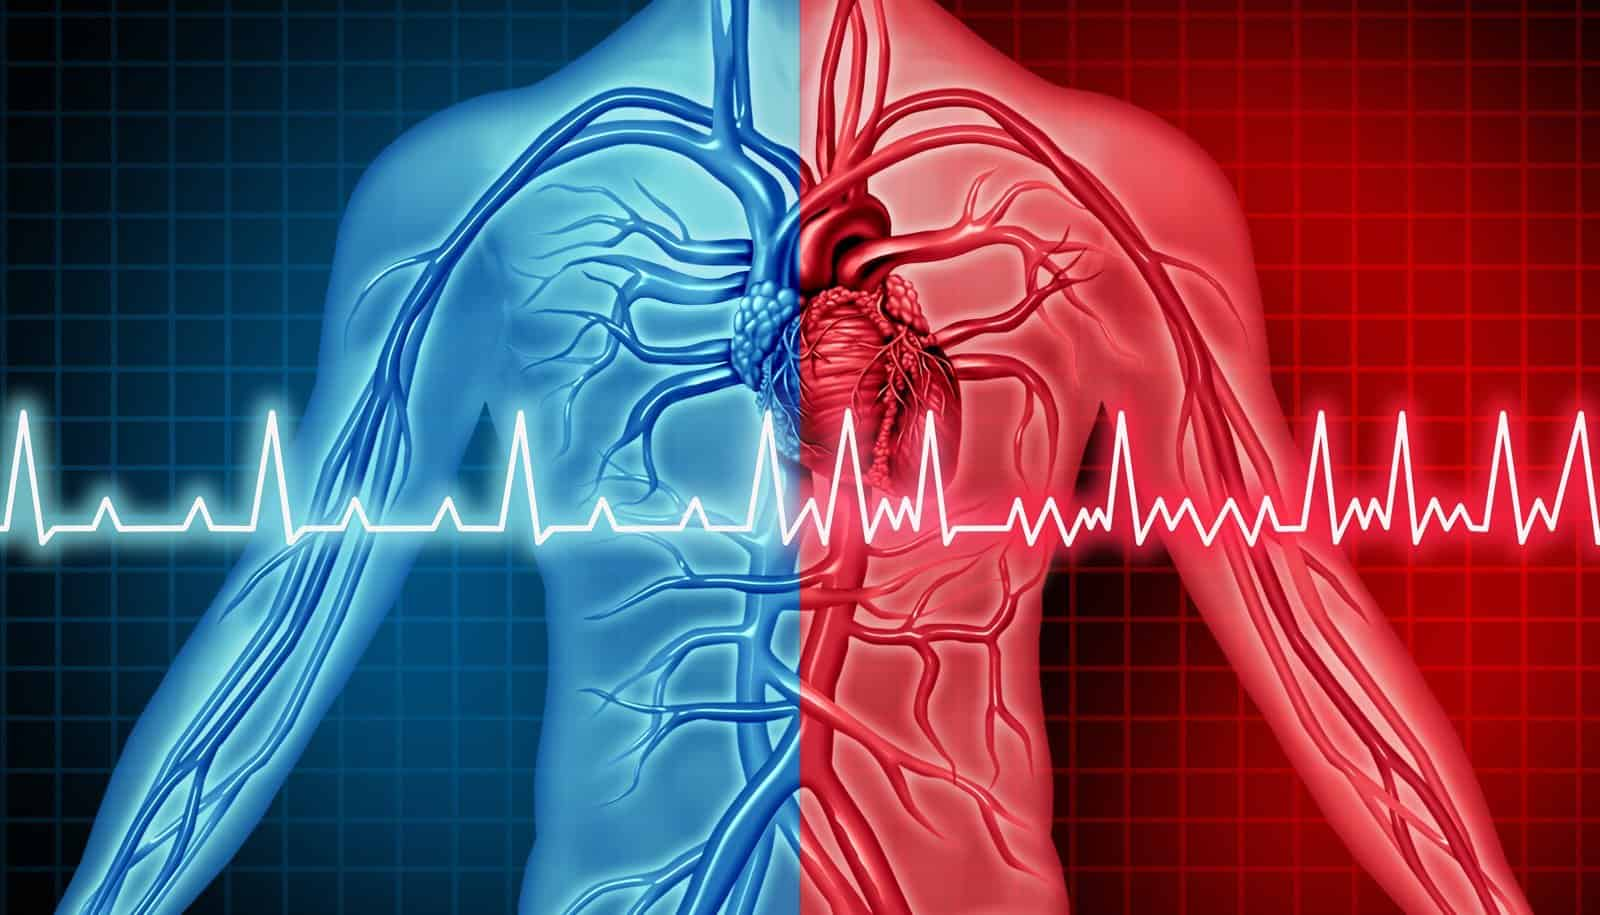 American Indians May Have Higher Risk of Dangerous Afib